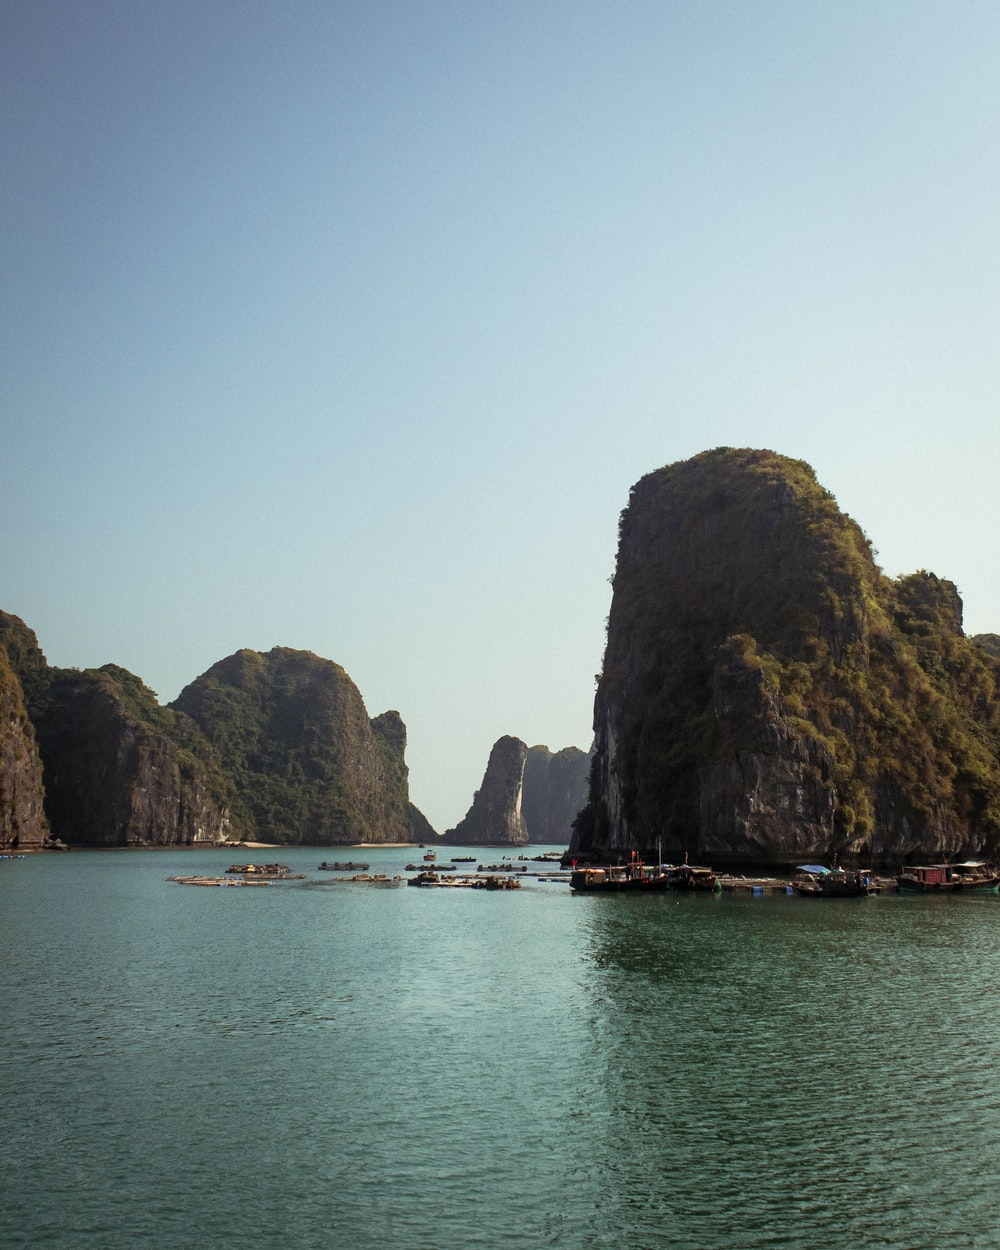 boats on sea near rock formation during daytime